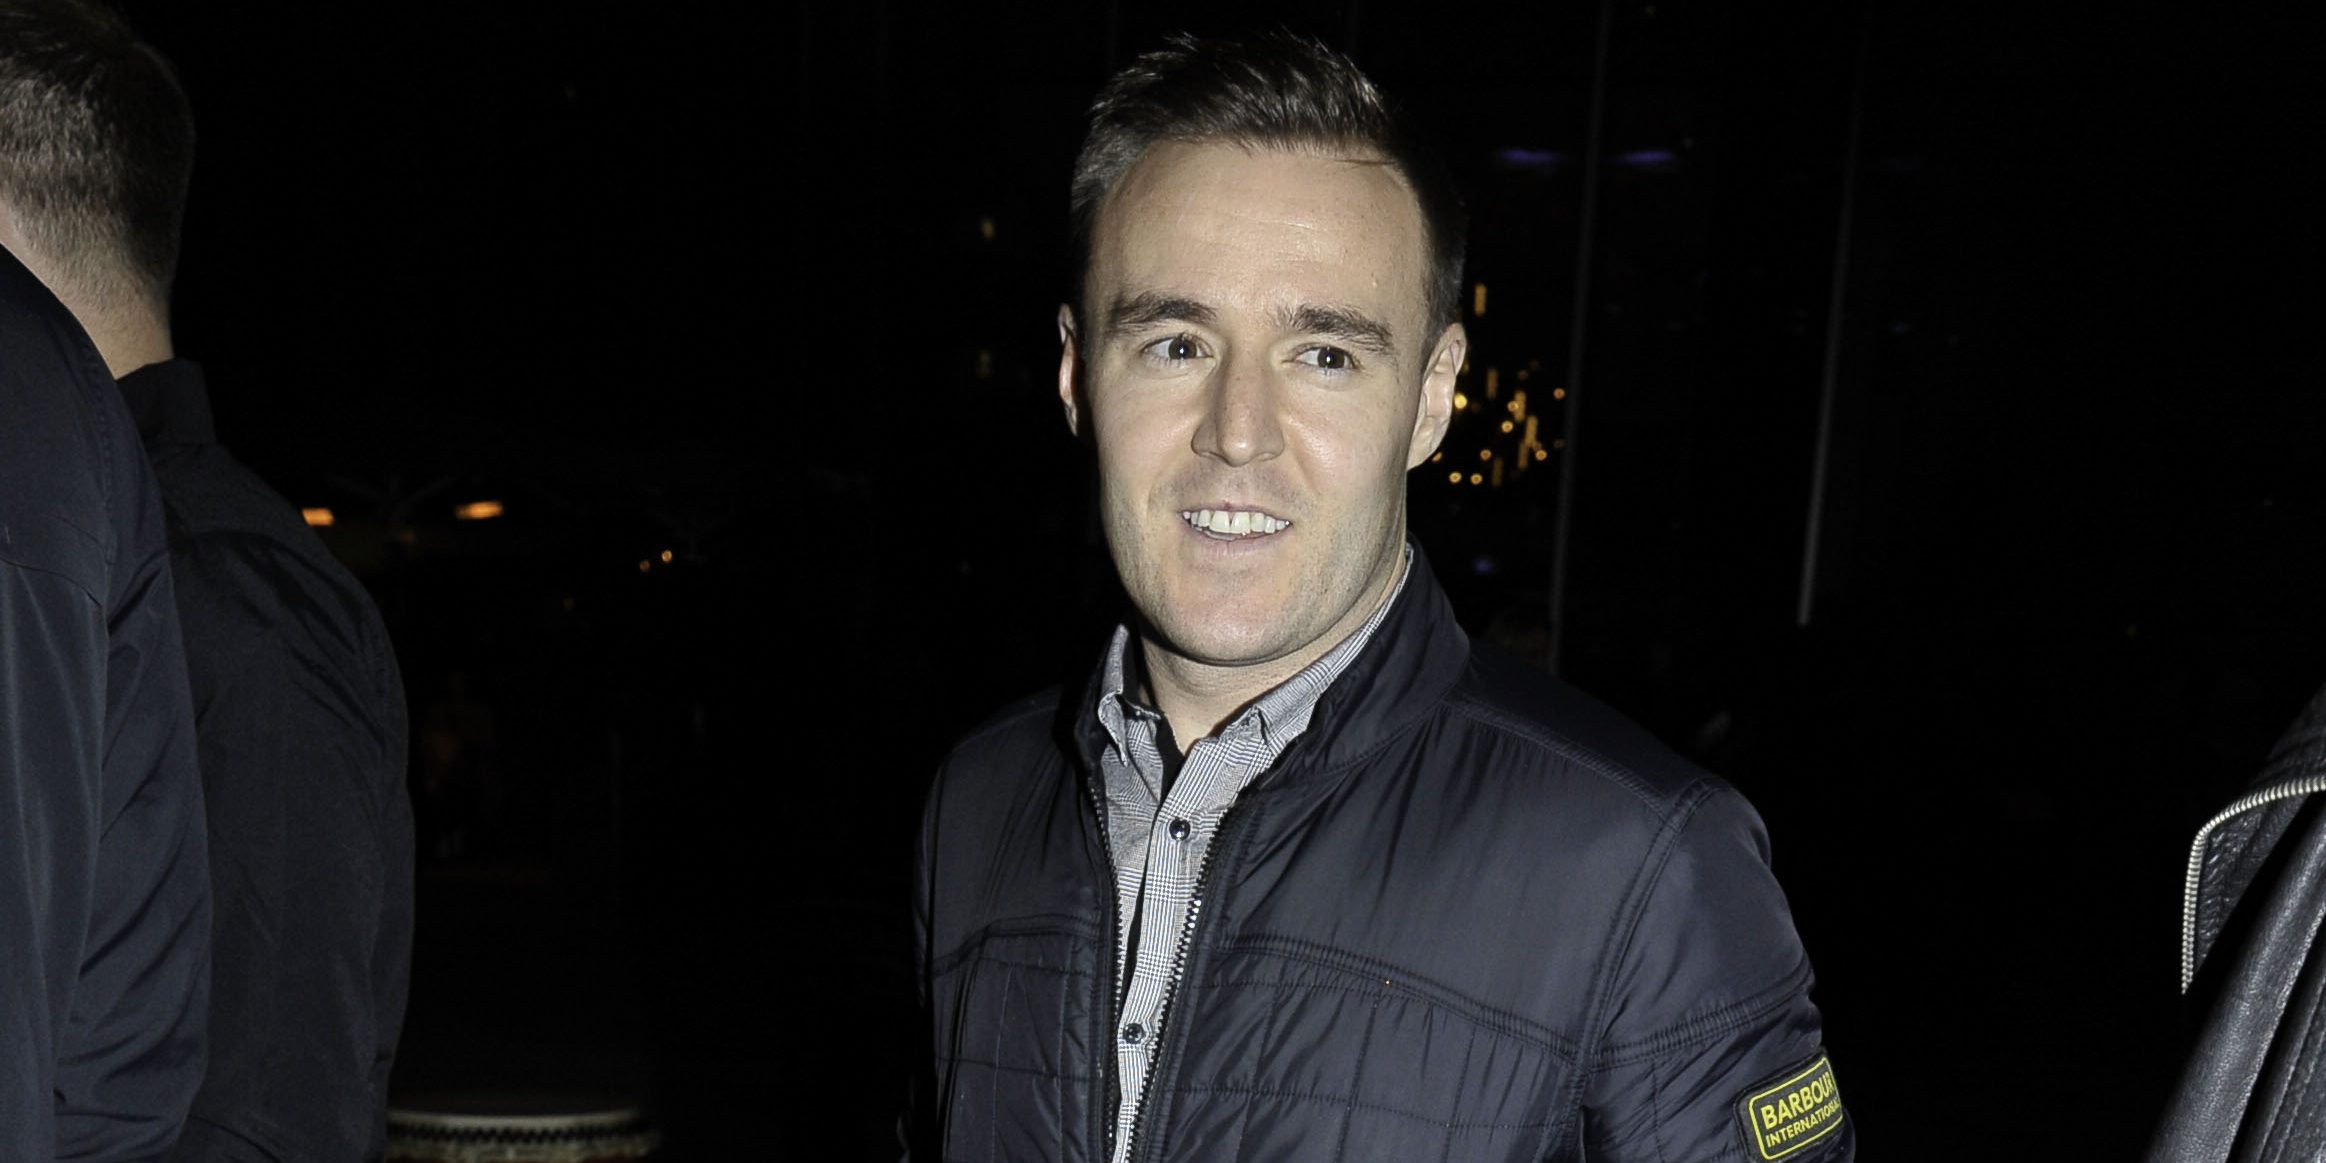 Coronation Street's Alan Halsall speaks out on being urged to propose to girlfriend Tisha Merry